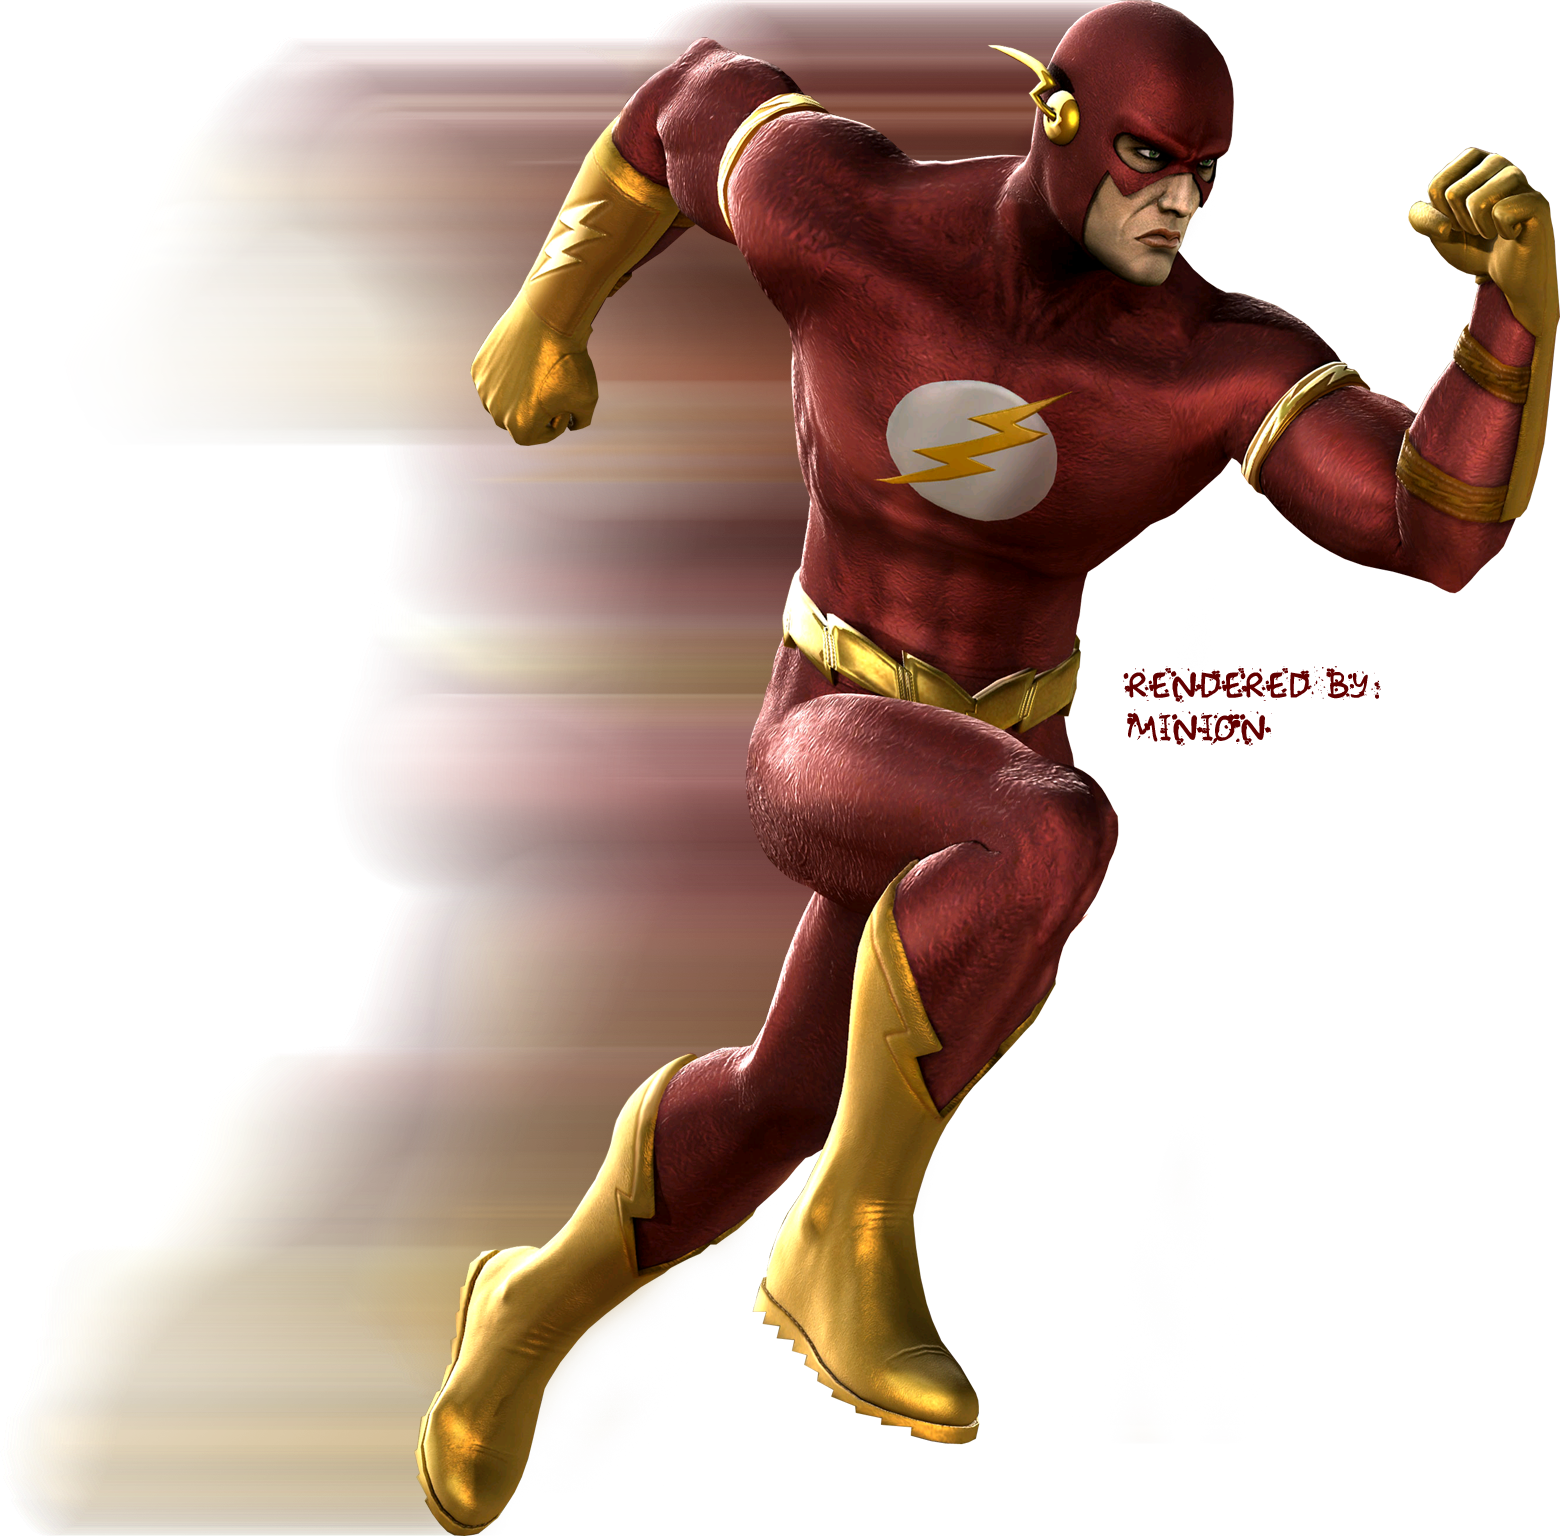 Flash cartoon png. Image rocksteady game default